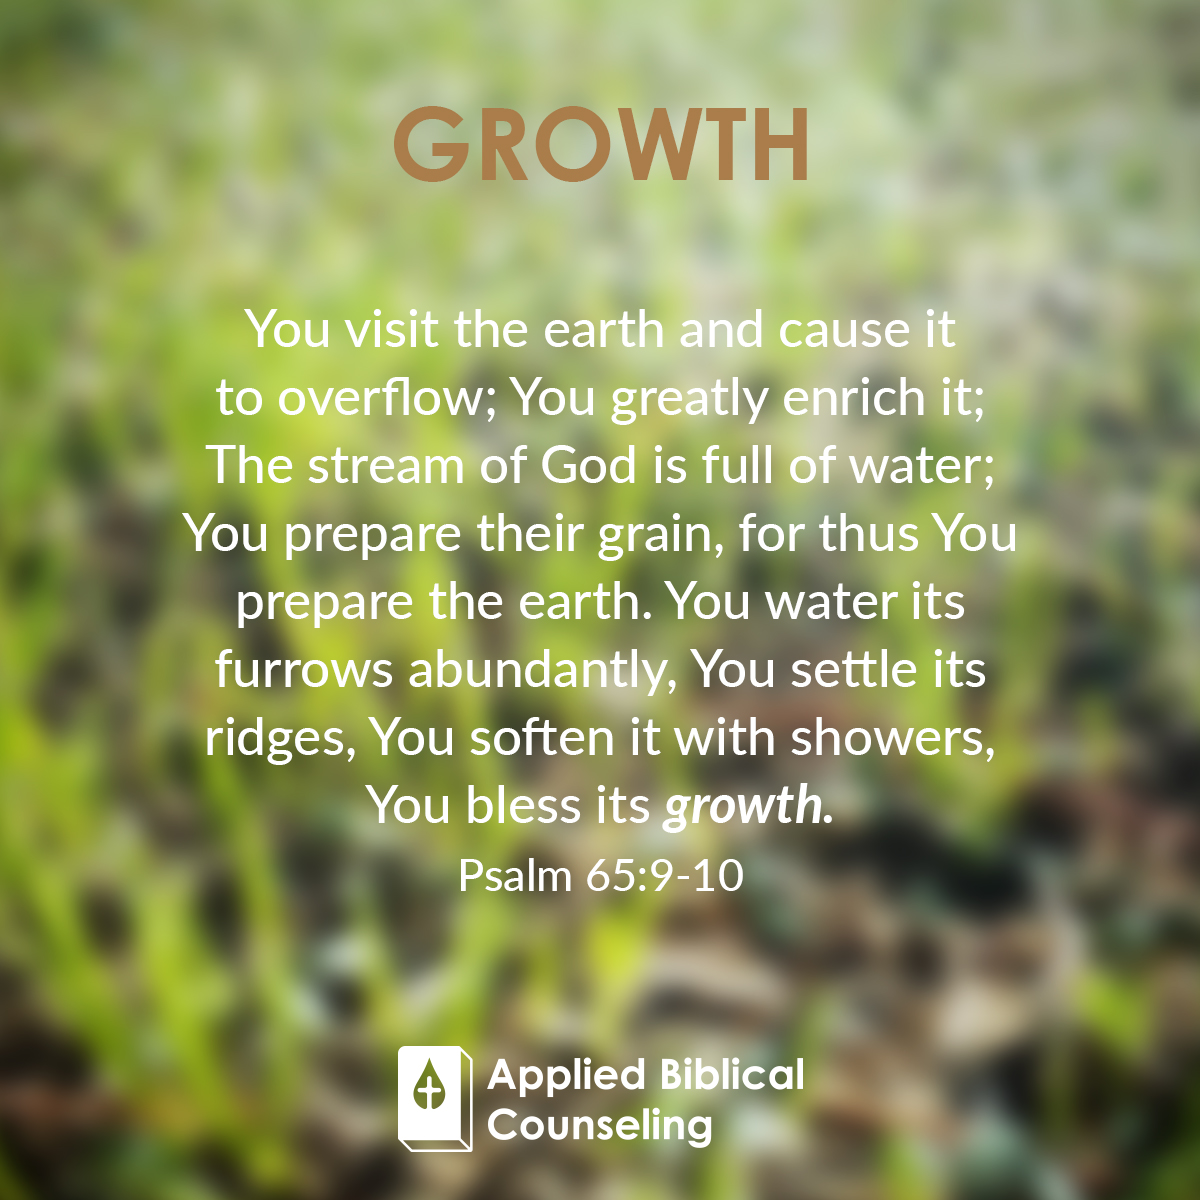 applied biblical counseling facebook w15 growth 3